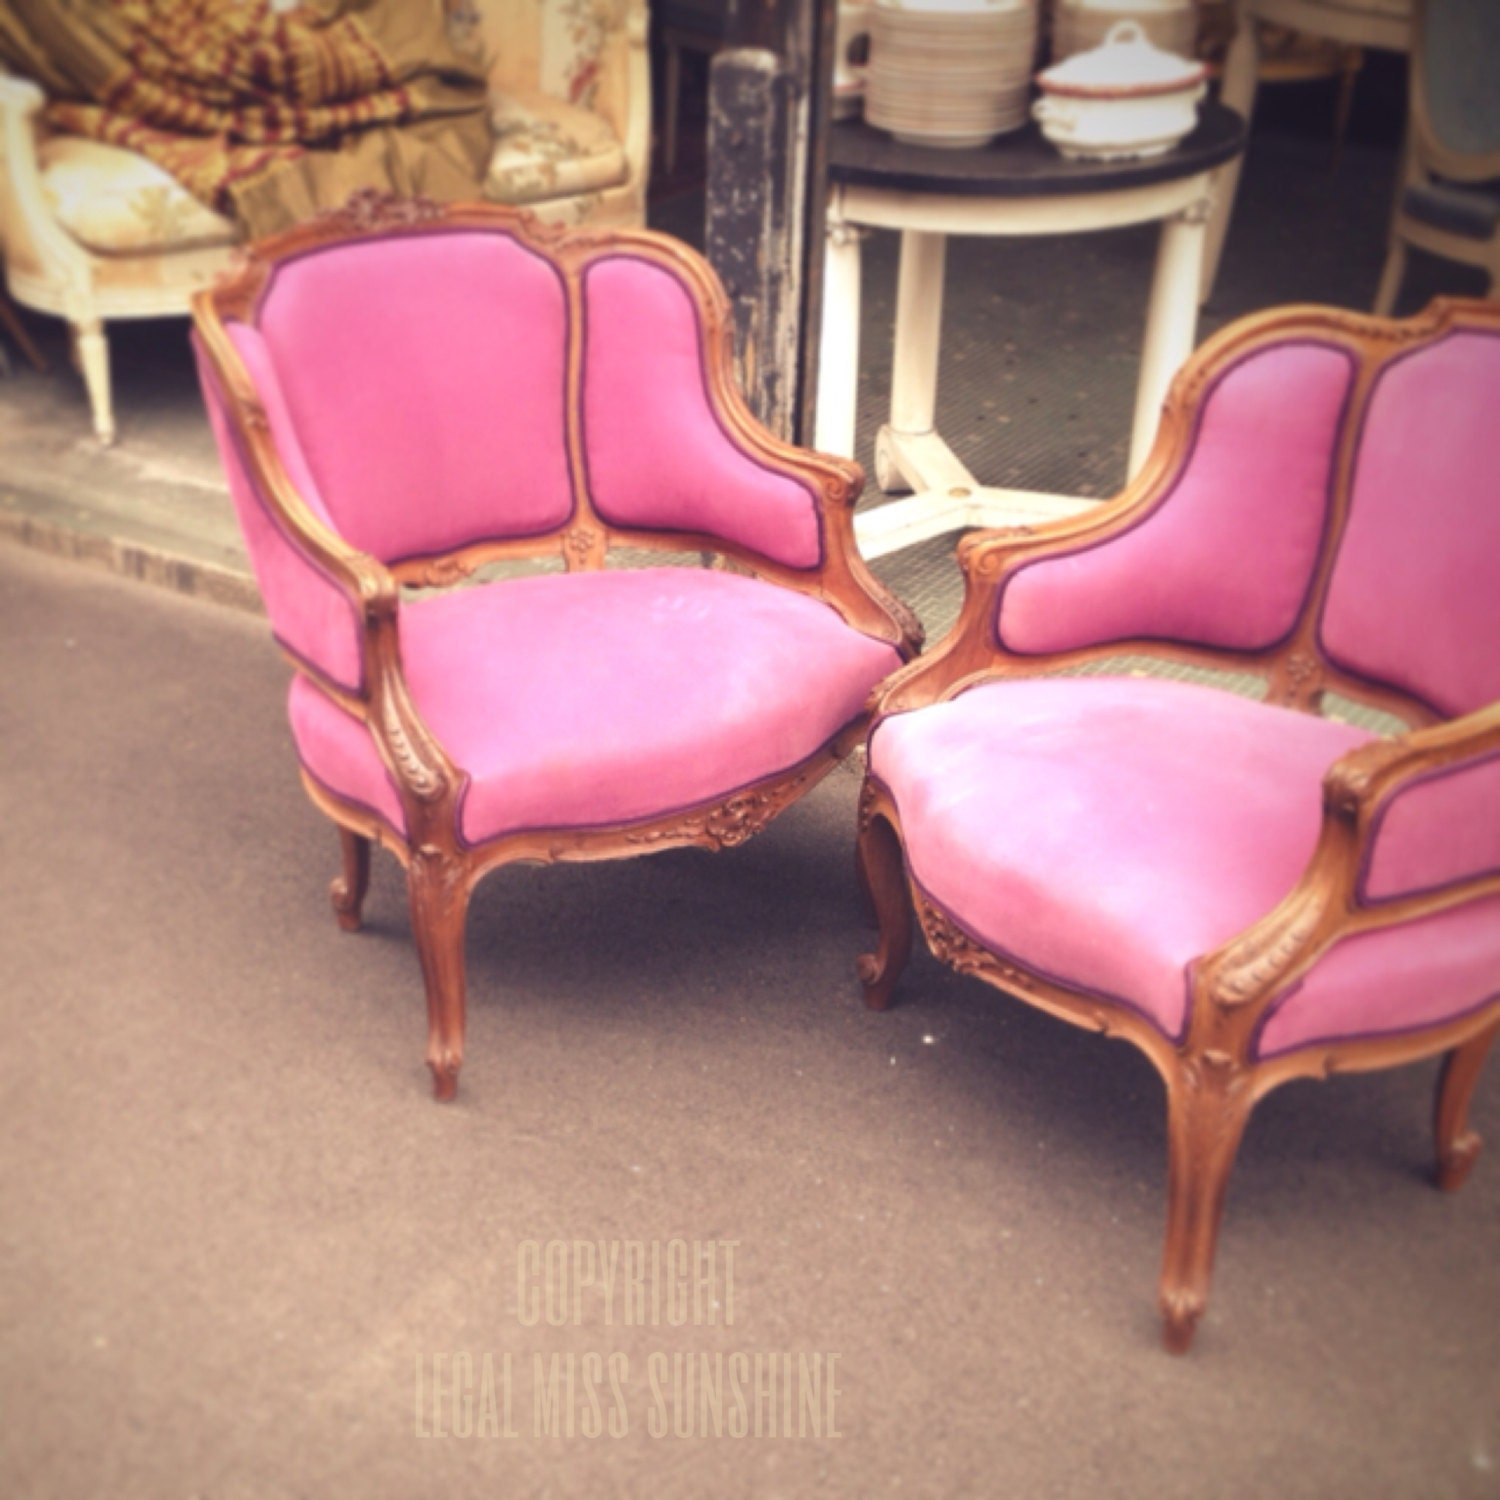 paris flea market photography: 5x5 of two amazing pink chairs - LegalMissSunshine